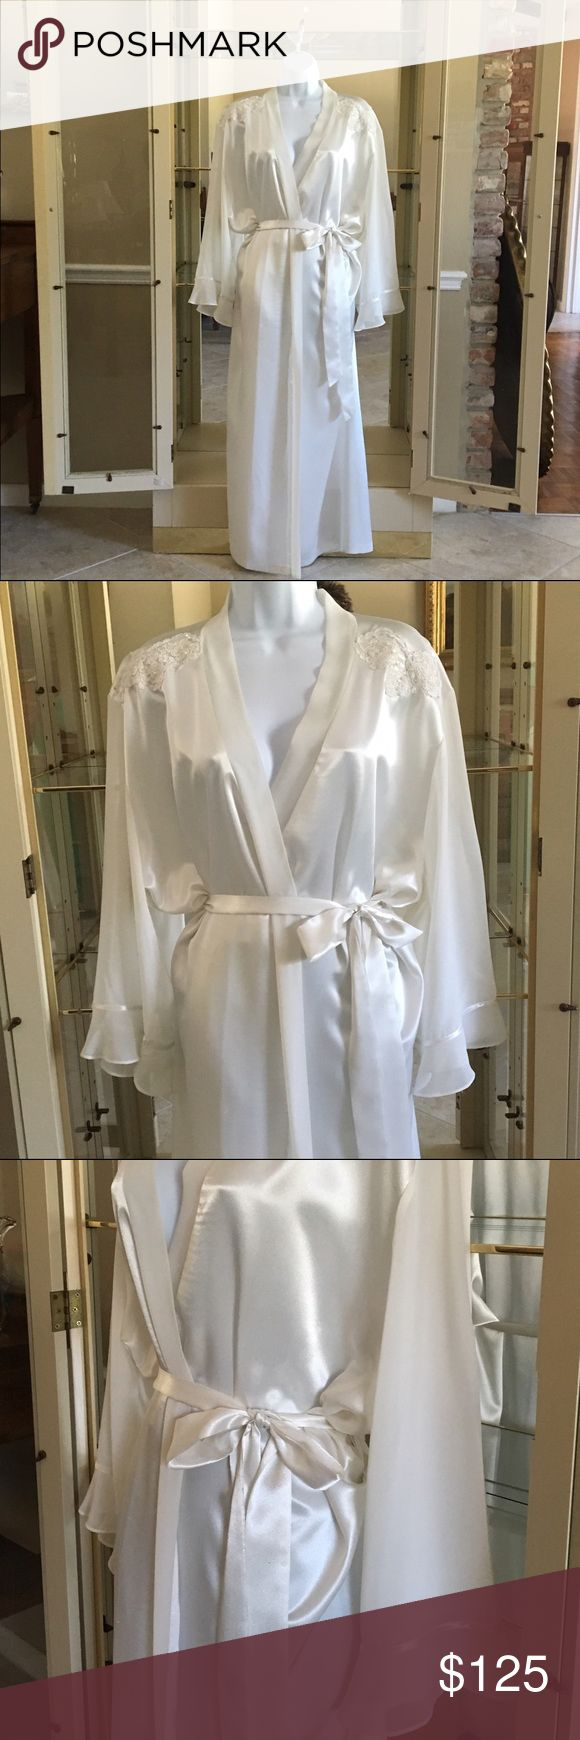 VINTAGE CALIFORNIA DYNASTY HONEYMOON DRESSING ROBE STUNNING VINTAGE 1980S CALIFORNIA DYNASTY BRIDAL SATIN AND SHEER DRESSING GOWN ROBE HONEYMOON LINGERIE SATIN, SHEER LACE BEADS EMBROIDERED LACE AT TOP FRONT TIES IN FRONT HAS LONG SHEER SLEEVES WITH FLOUNCED RUFFLED BOTTOMS ABSOLUTELY BEAUTIFUL REMINDS ME OF THE REAL DYNASTY SHOW FROM THE 1980S LINDA EVENS WAS WEARING DRESSING GOWNS JUST LIKE THIS ONE  IN BRAND NEW CONDITION CALIFORNIA DYNASTY Intimates & Sleepwear Robes